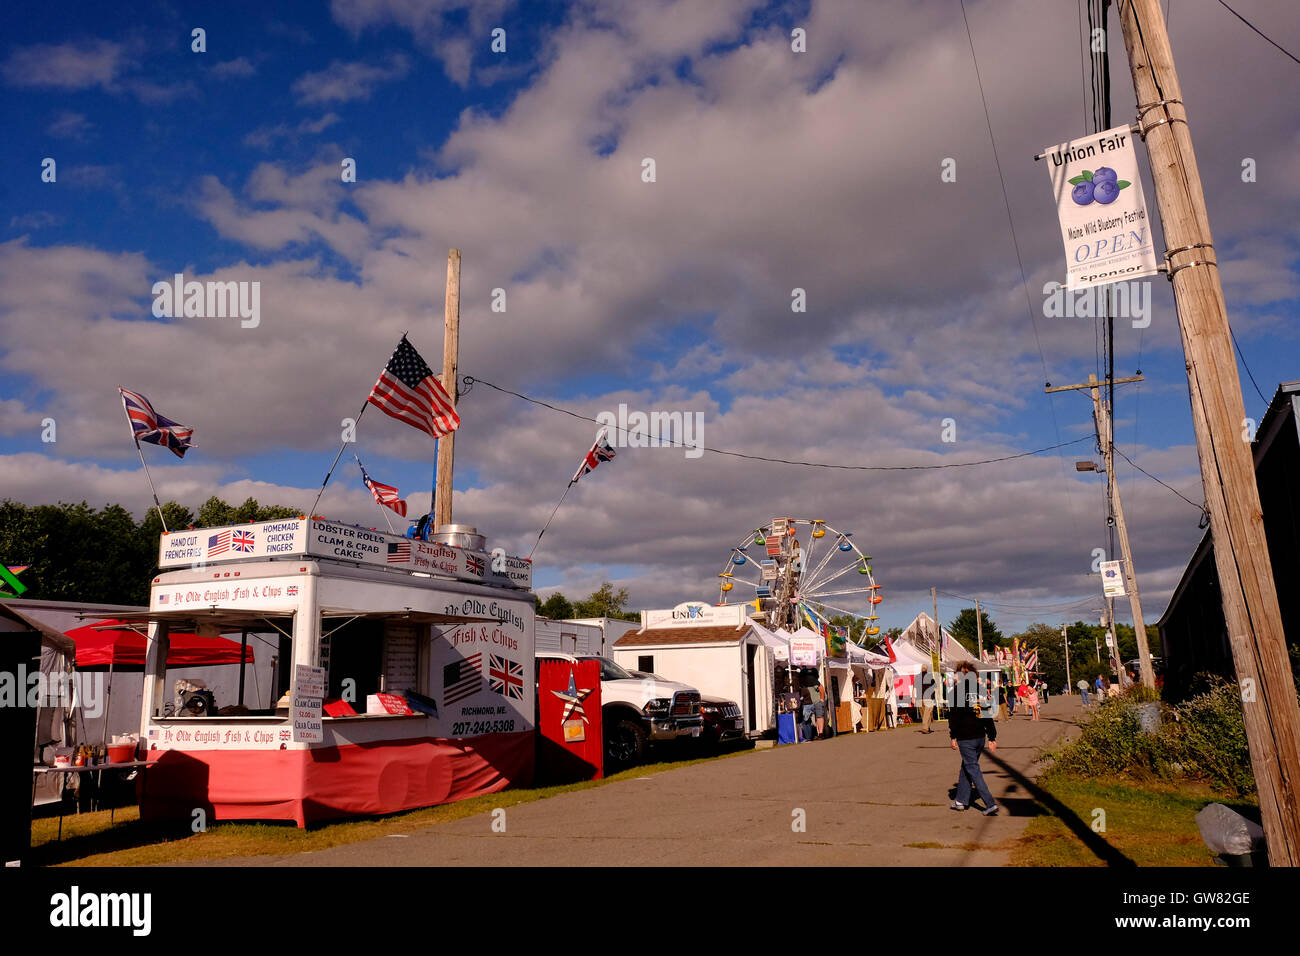 County fair midway with ferris wheel, rides and food stalls Stock Photo